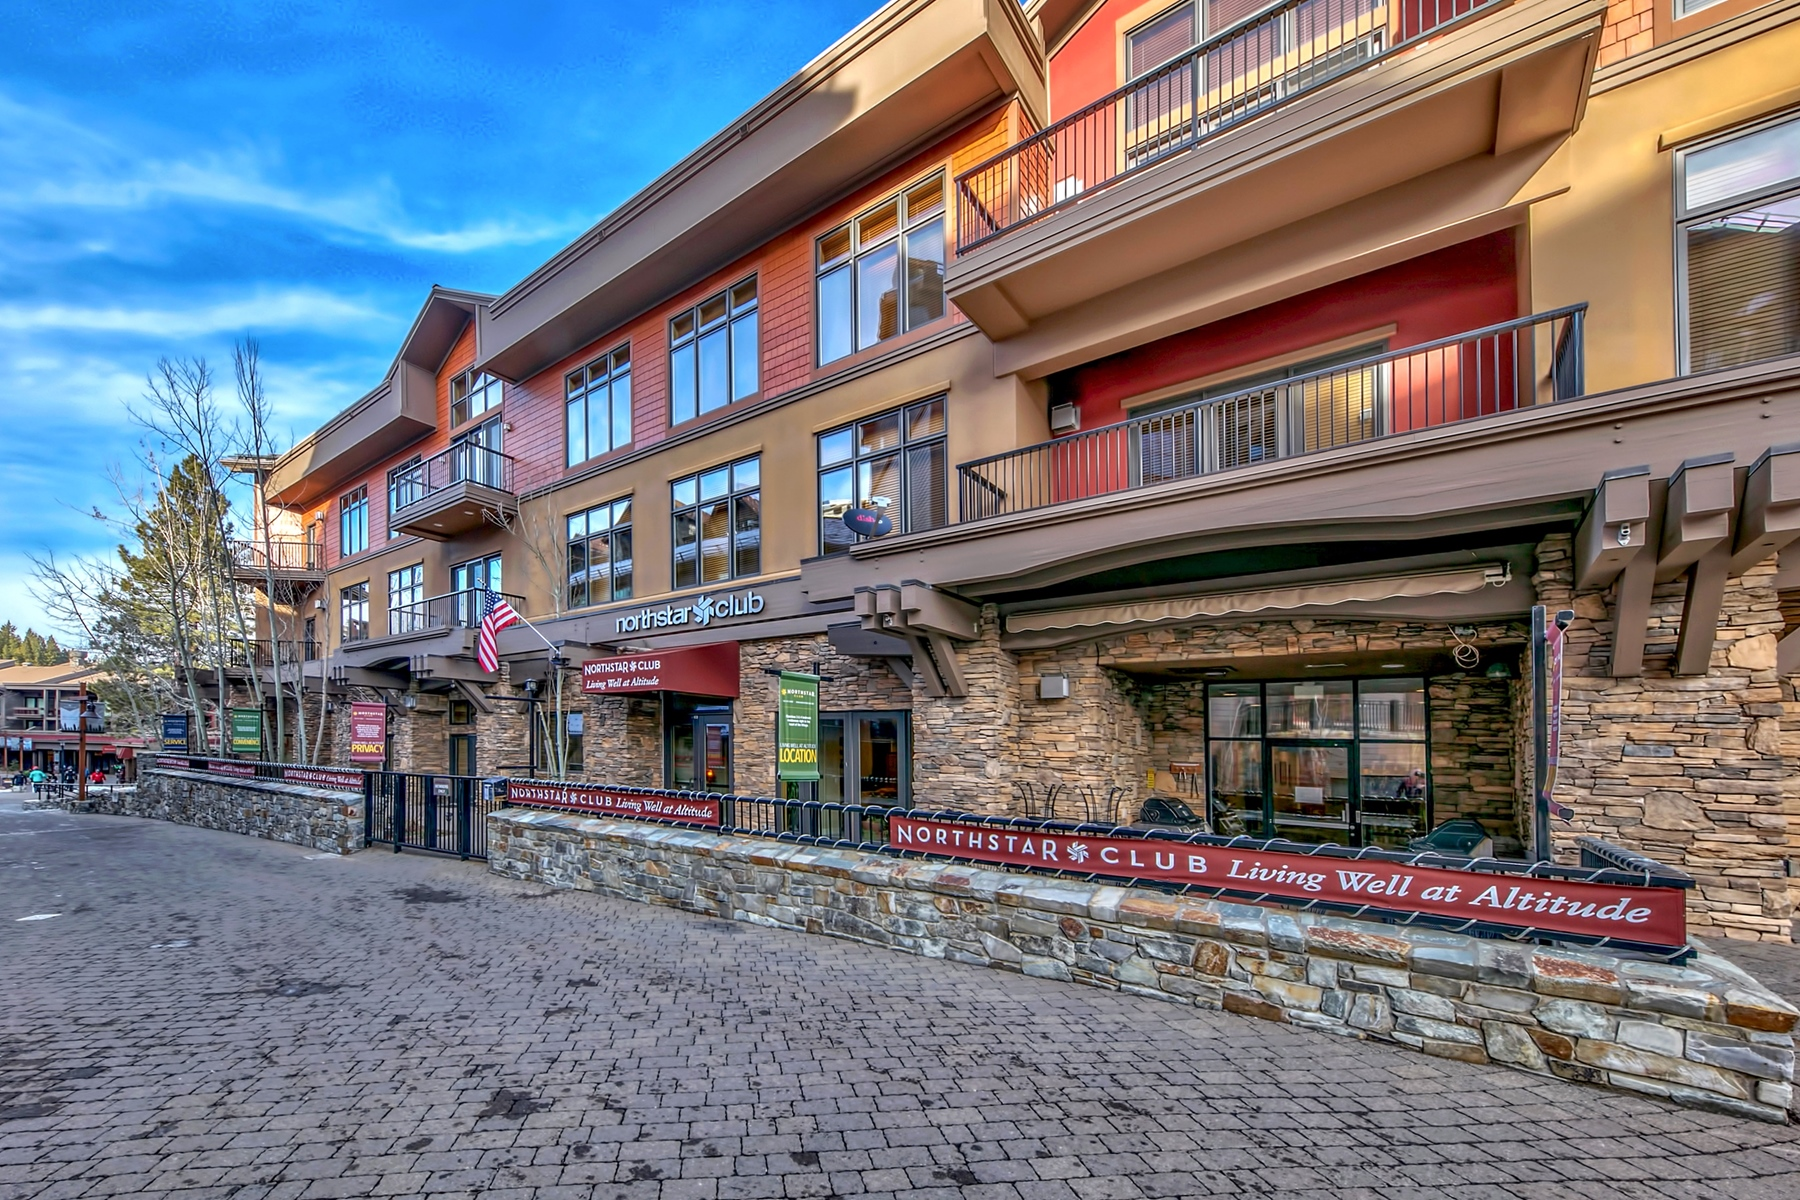 Property for Active at 2100 N Village Drive 302/#6, Truckee, CA 2100 N Village Drive 302/#6 Truckee, California 96161 United States